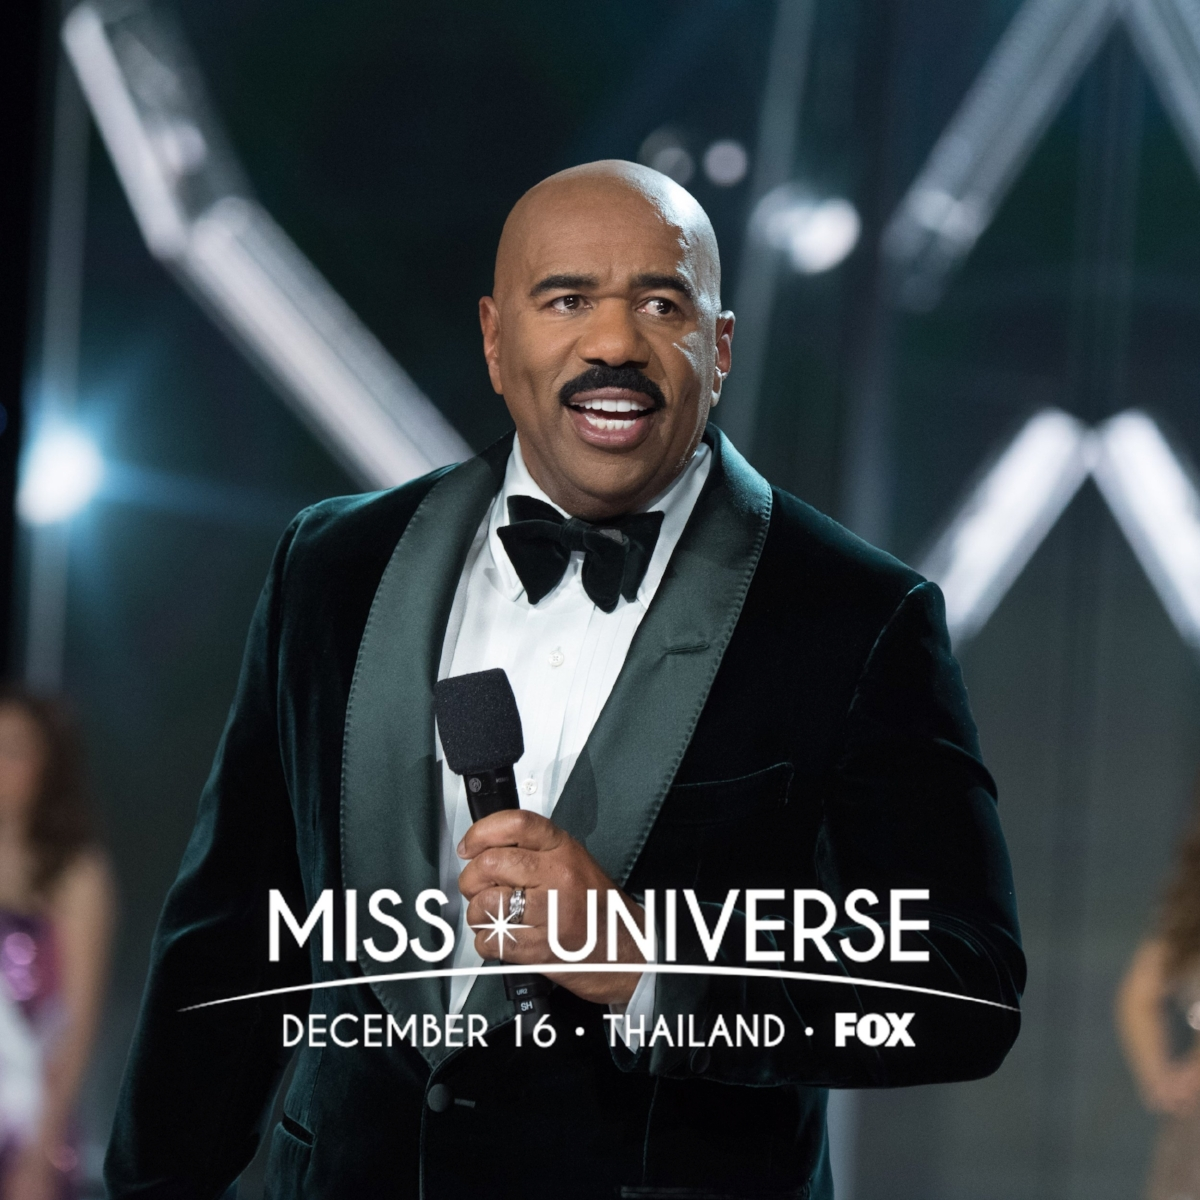 Steve Harvey to host 2018 Miss Universe